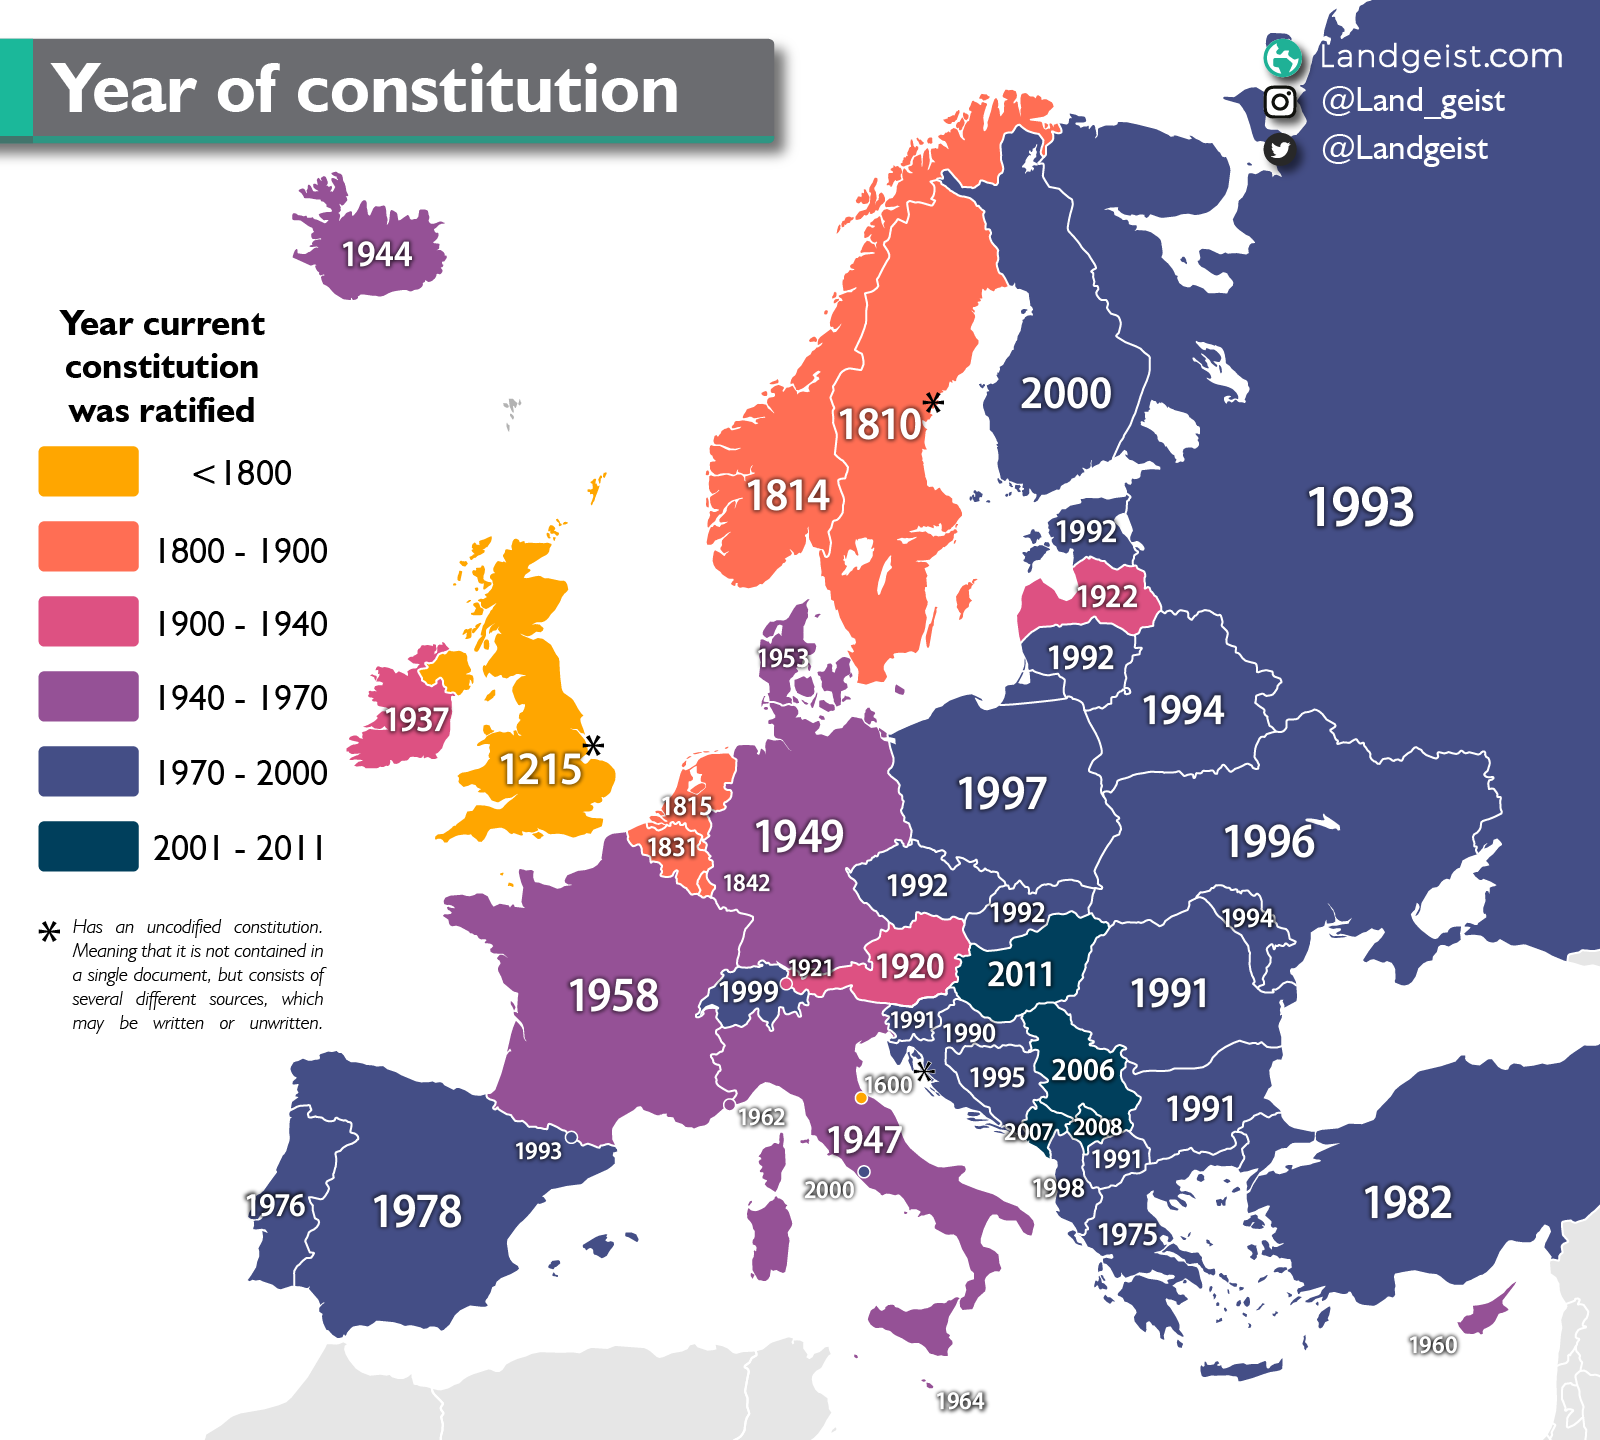 Map of Europe showing the year the constitution was ratified.